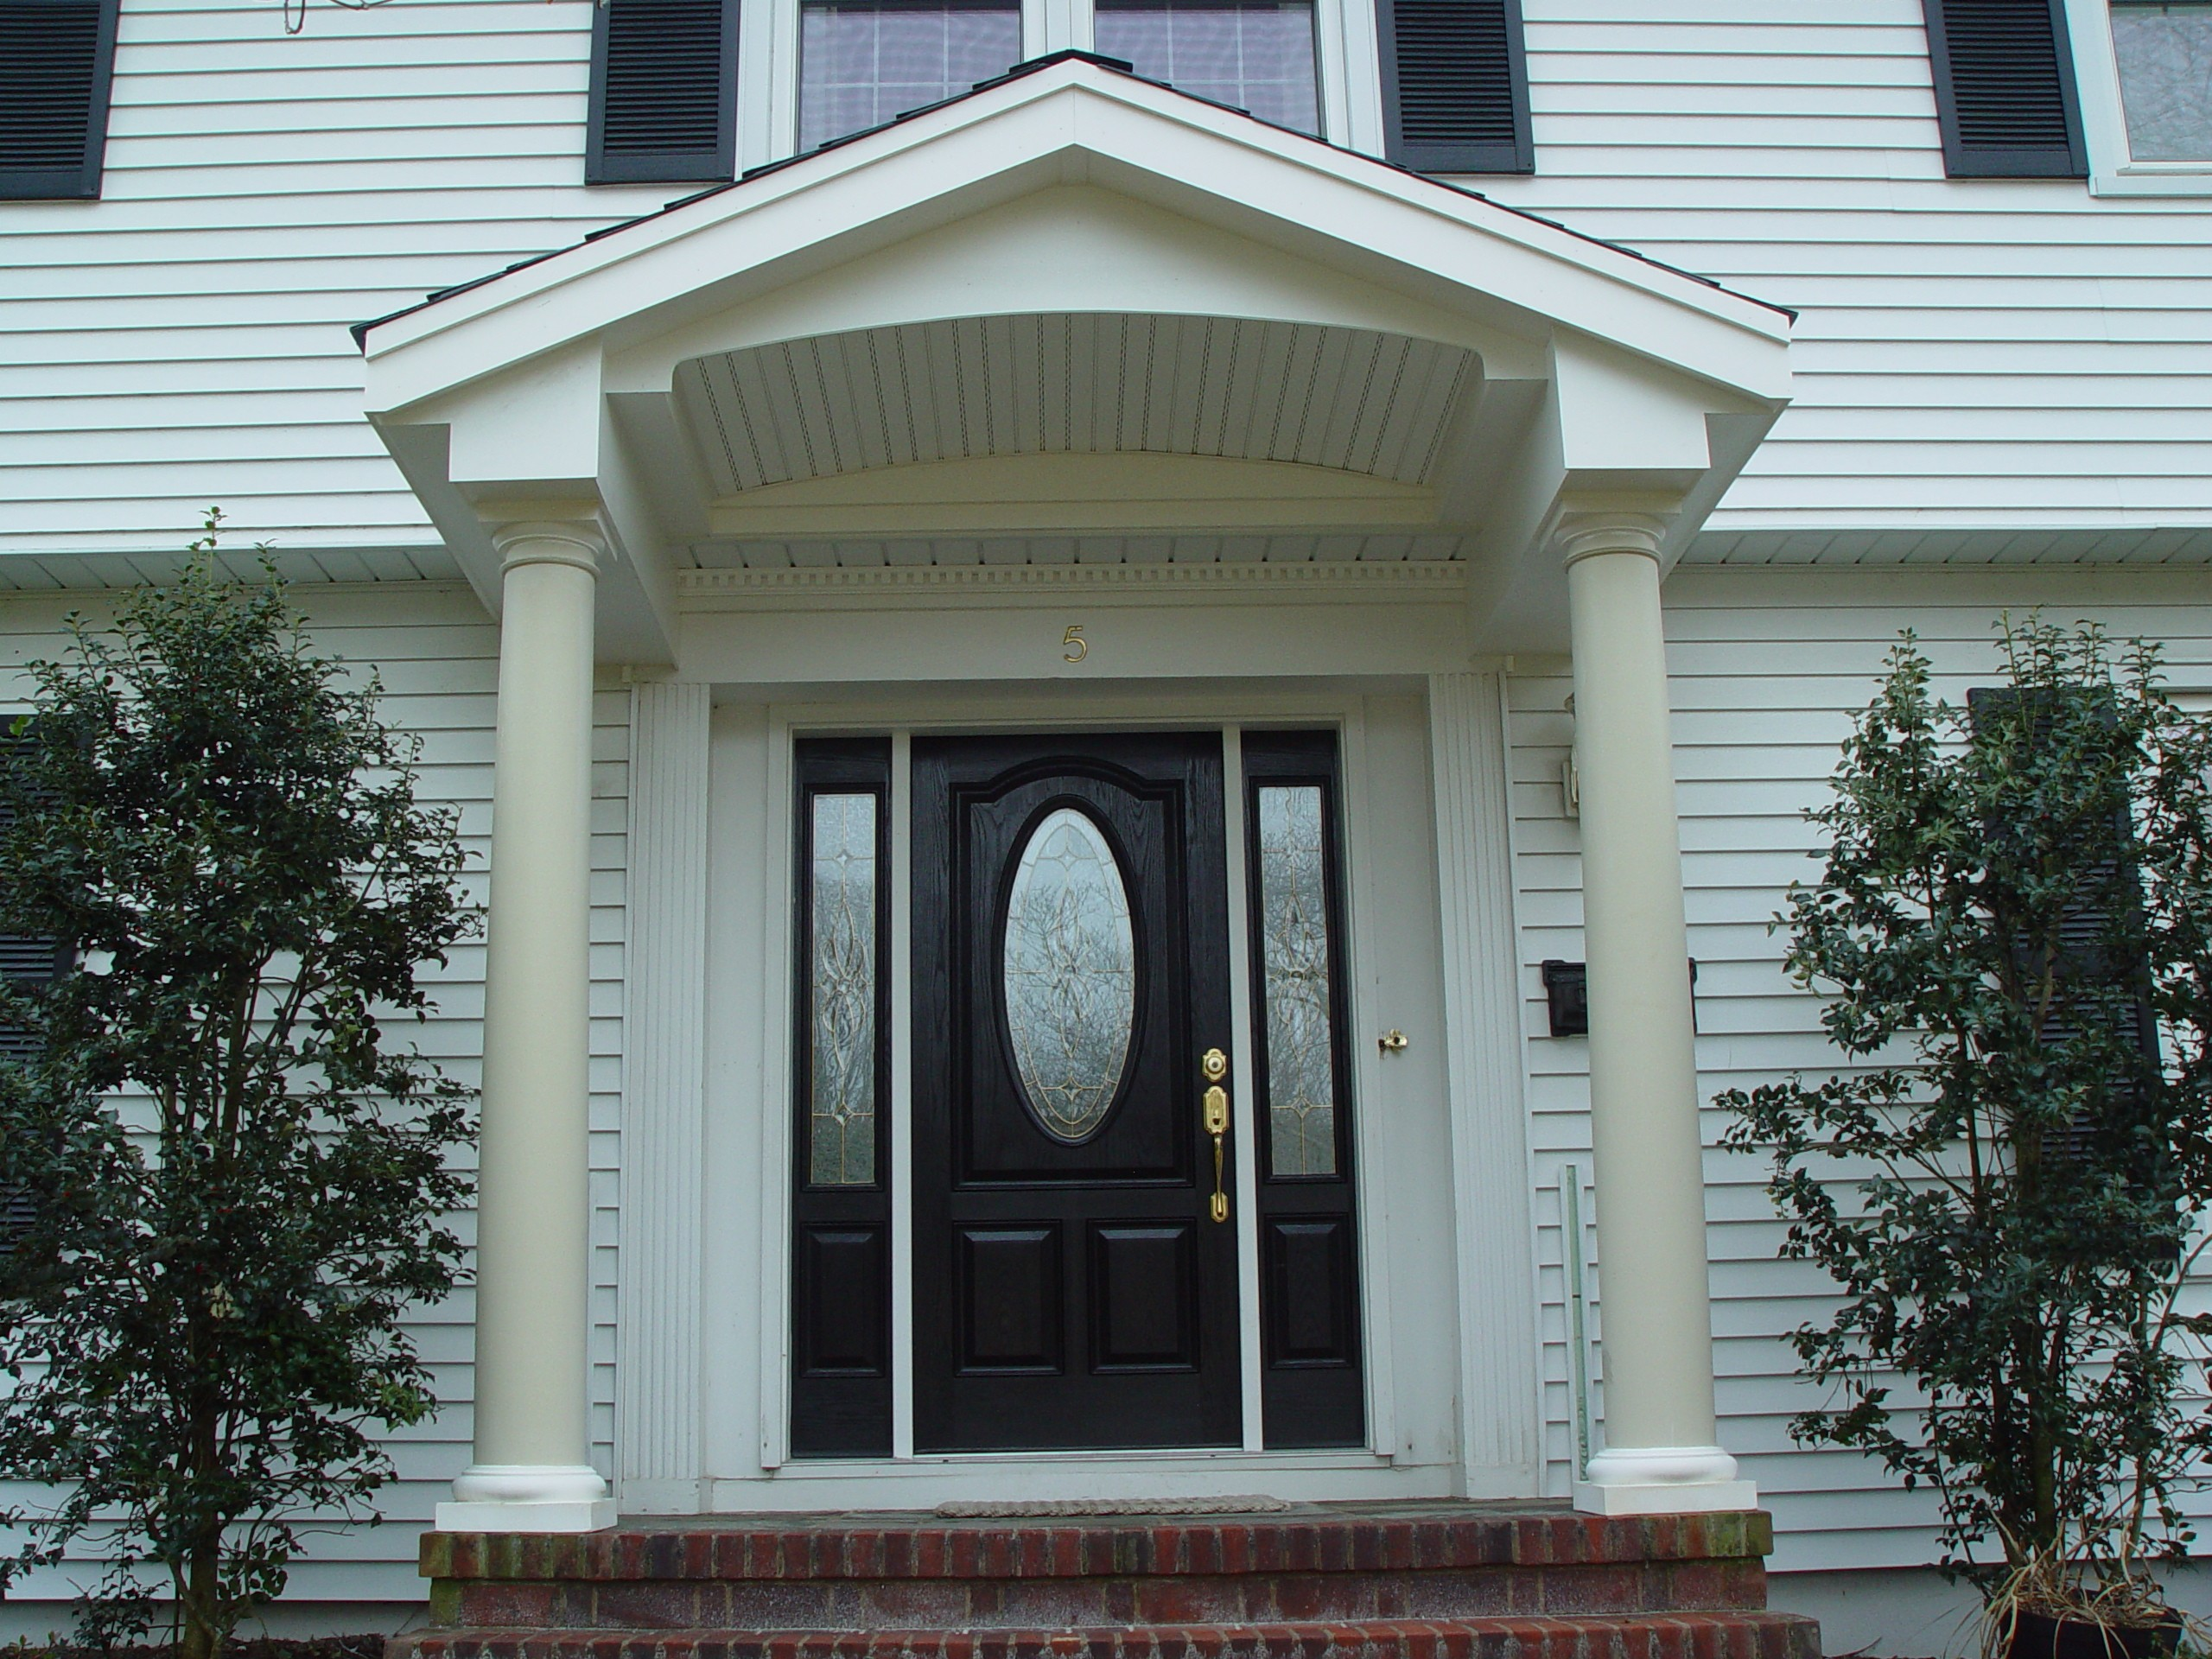 Front entry portico remodeling projects in new jersey for Front exterior home designs